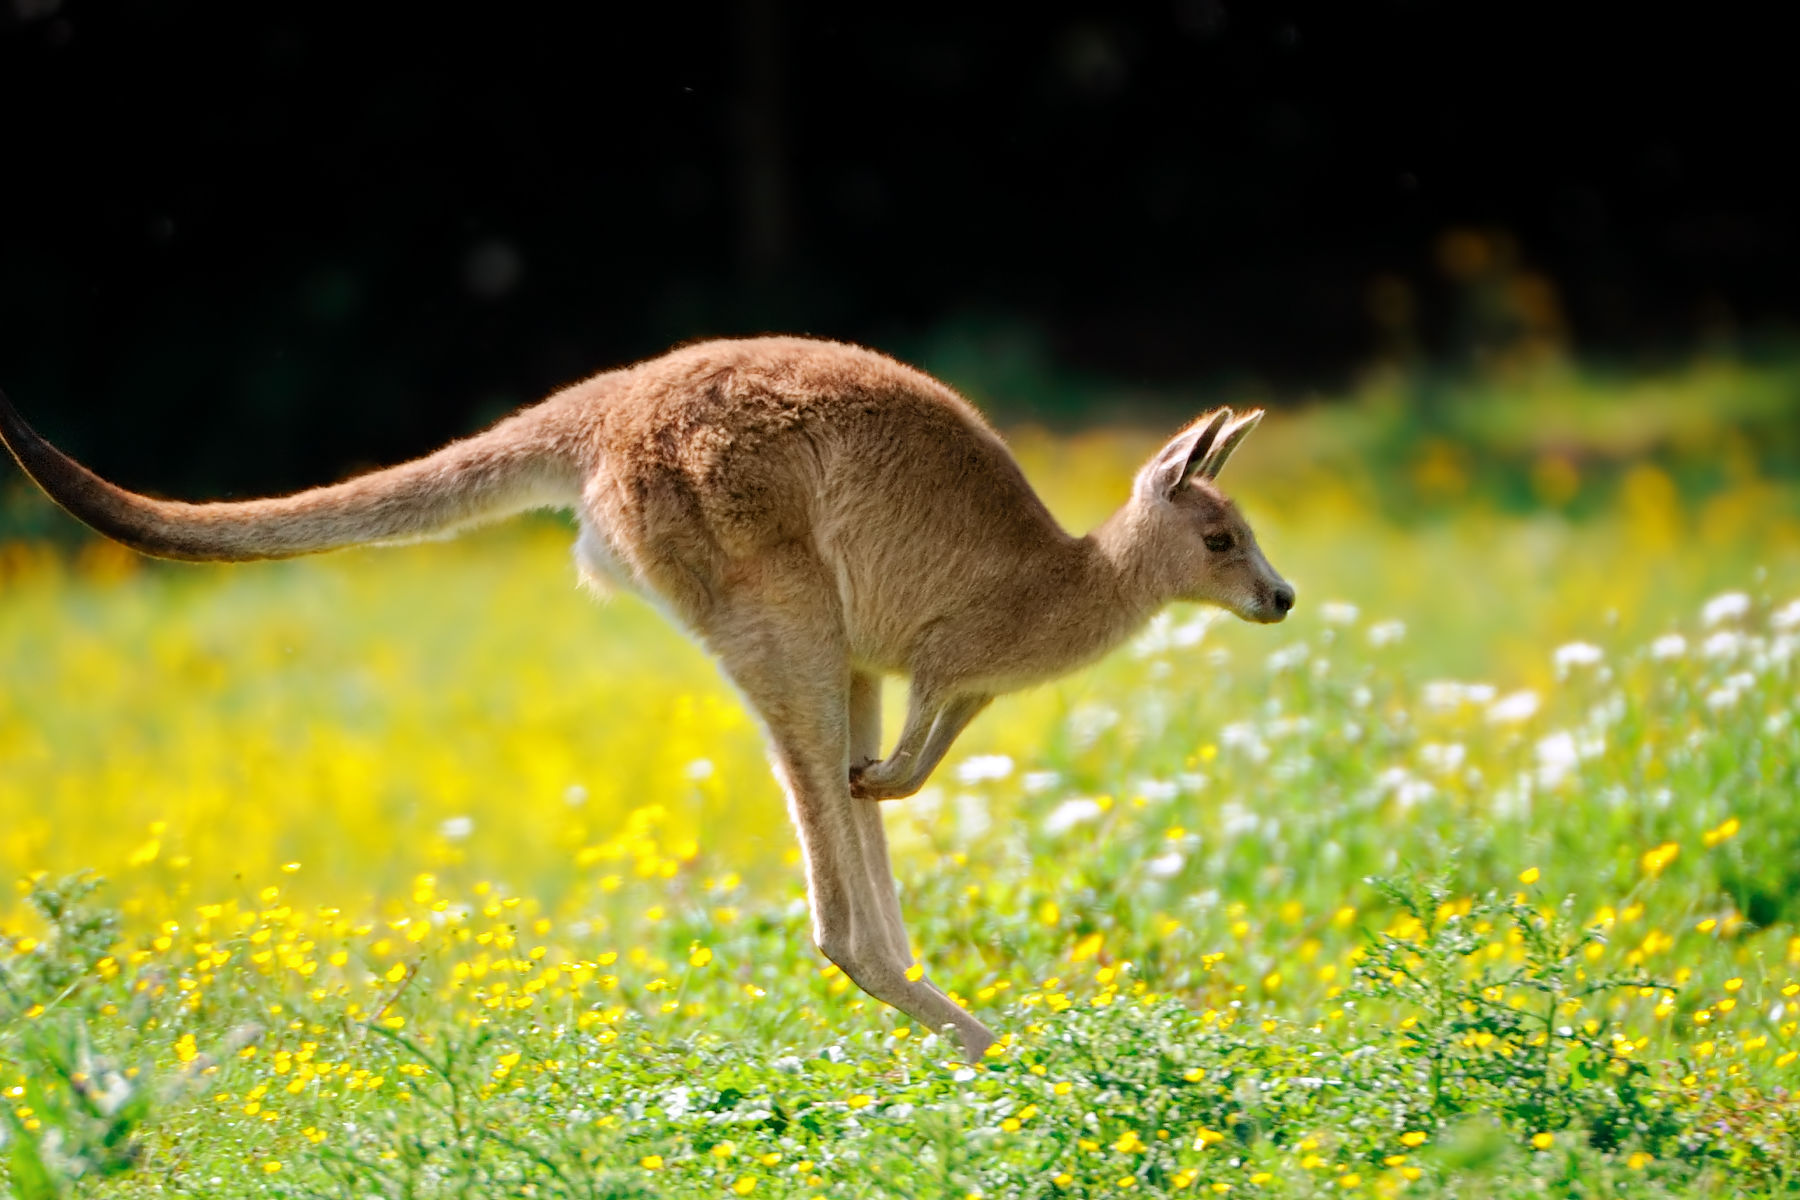 An Escaped Kangaroo Is on the Loose in Texas